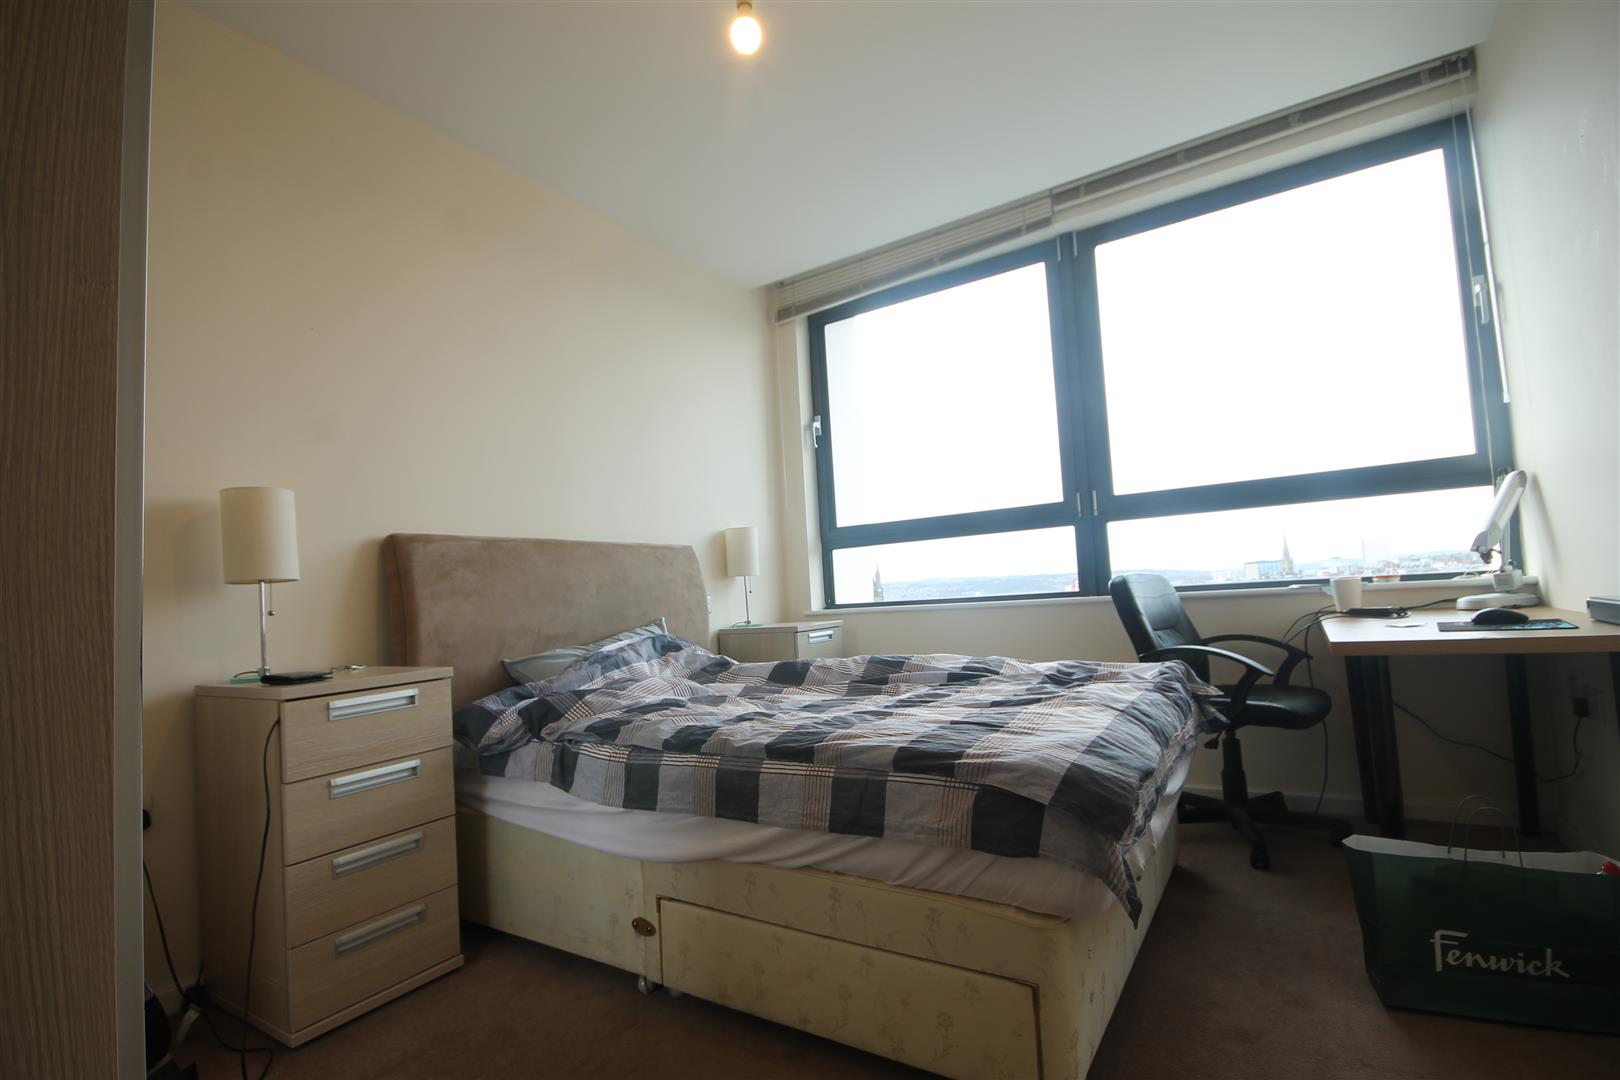 Lvl 9 Apt 14 55 Degrees North Newcastle Upon Tyne, 2 Bedrooms  Apartment ,To Let